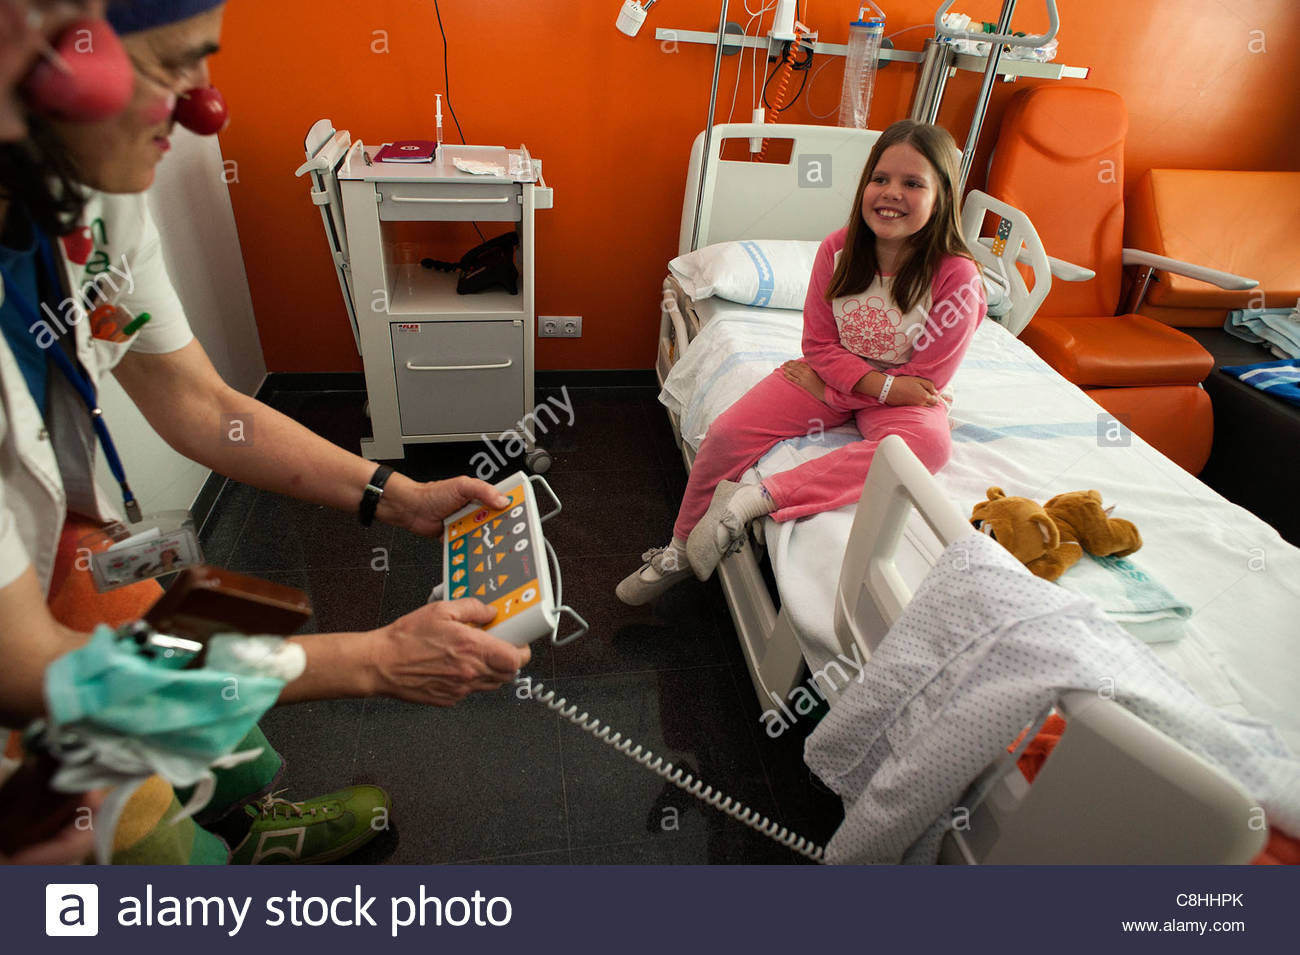 A clown entertains a sick child in a hospital. - Stock Image